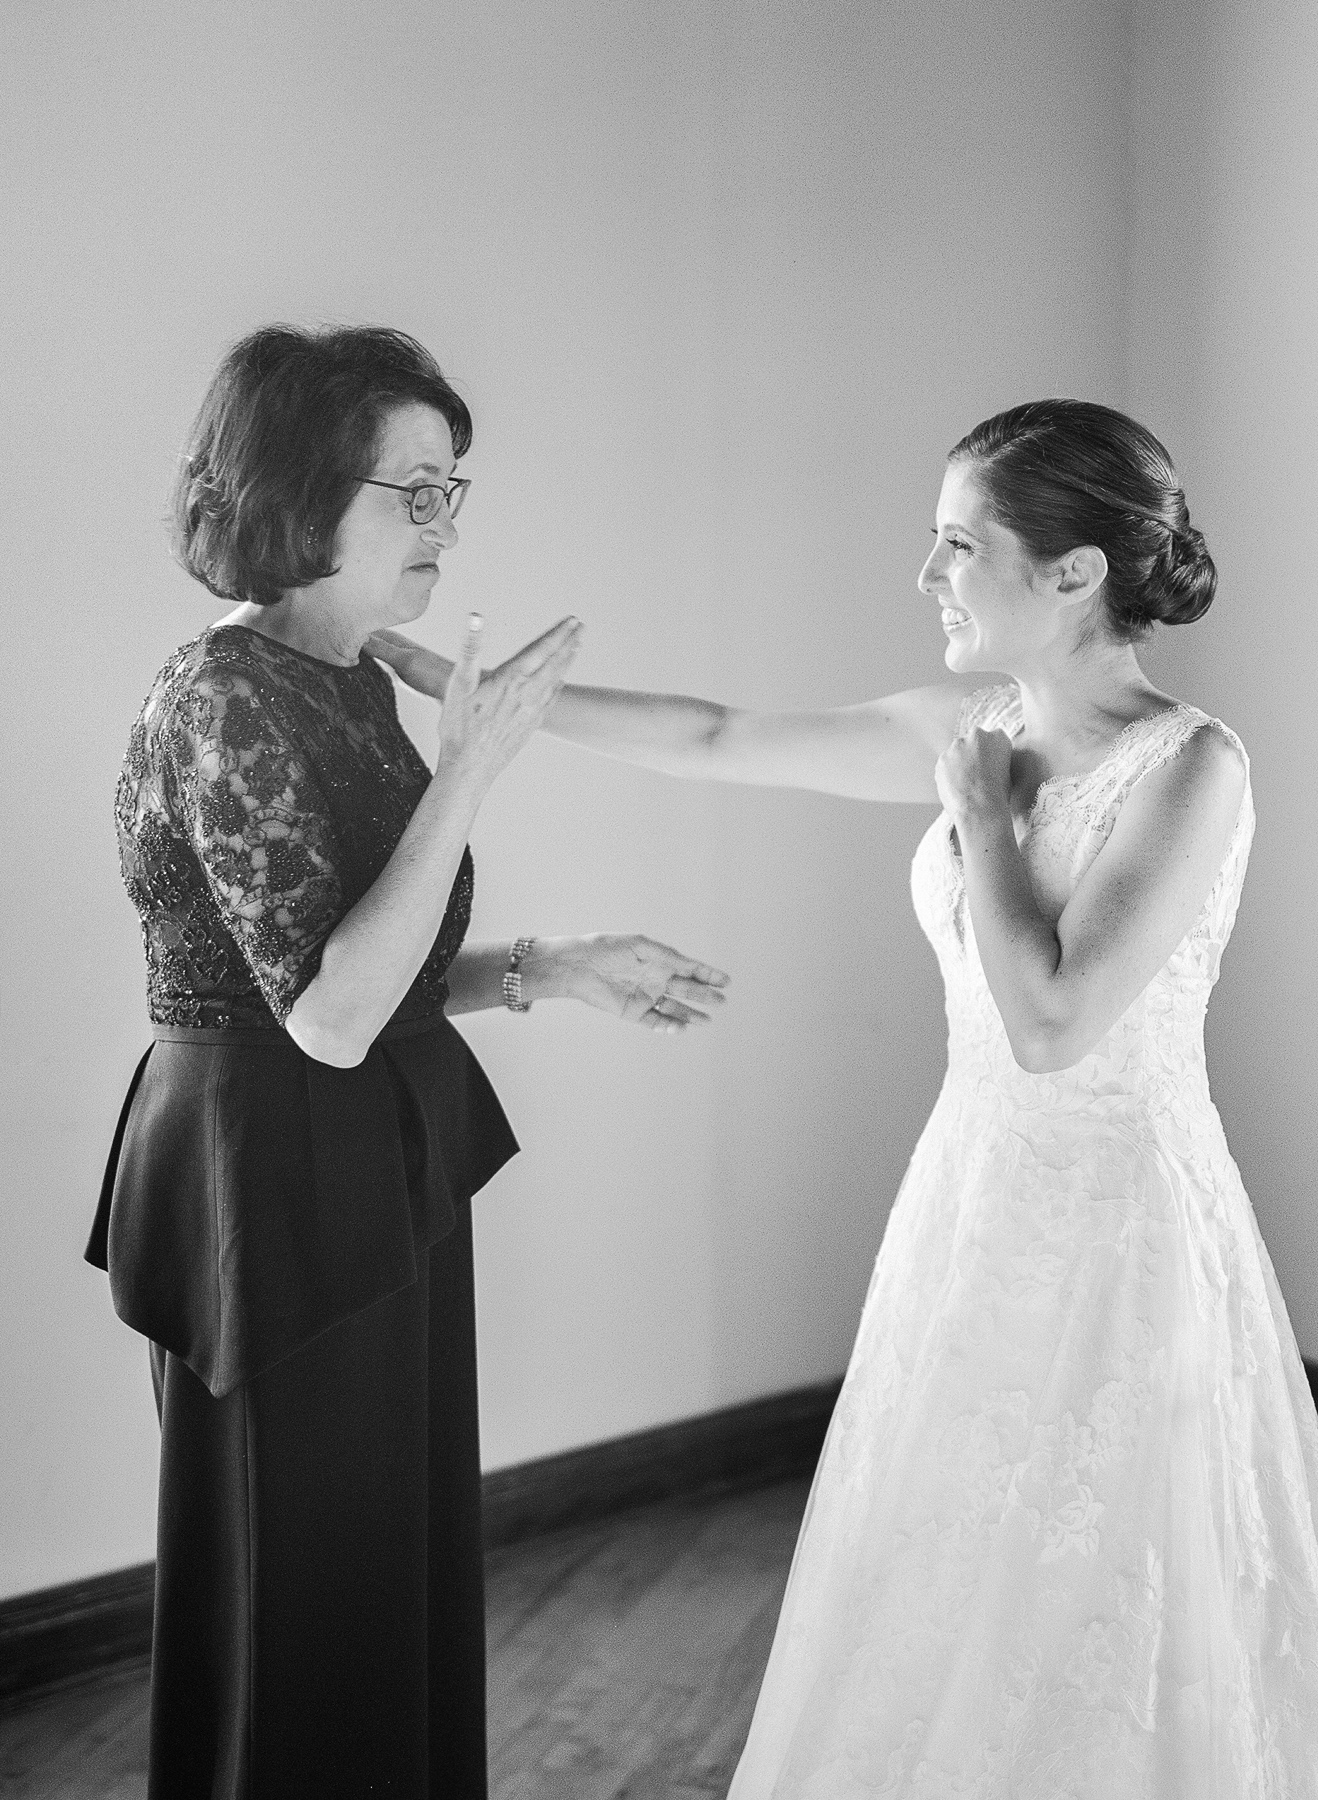 Mother of the Bride Reaction on Wedding Day